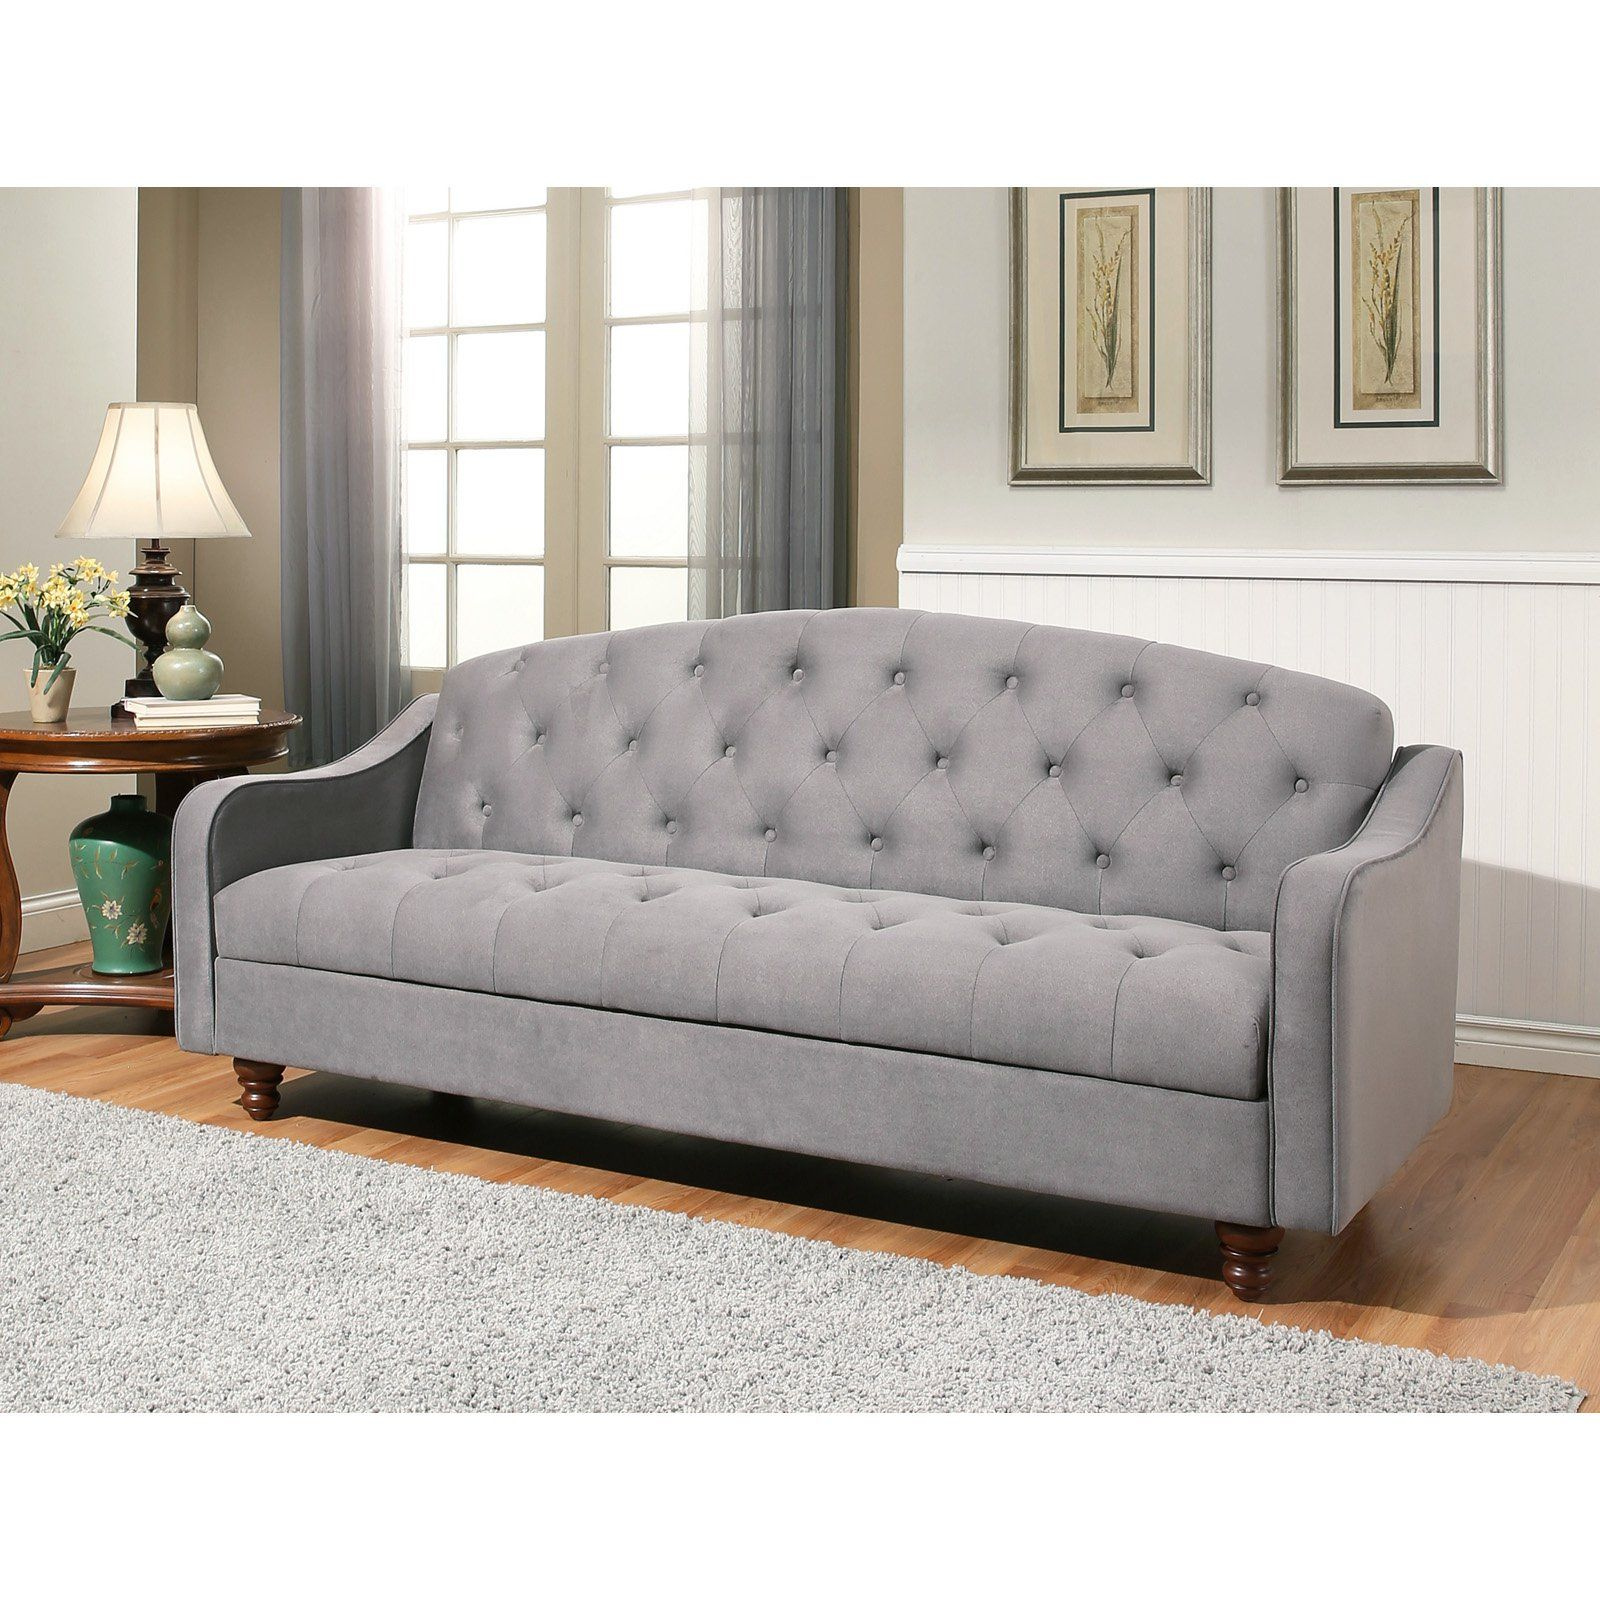 Peachy Abbyson Cordell Tufted Sofa Bed Gray Products In 2019 Squirreltailoven Fun Painted Chair Ideas Images Squirreltailovenorg